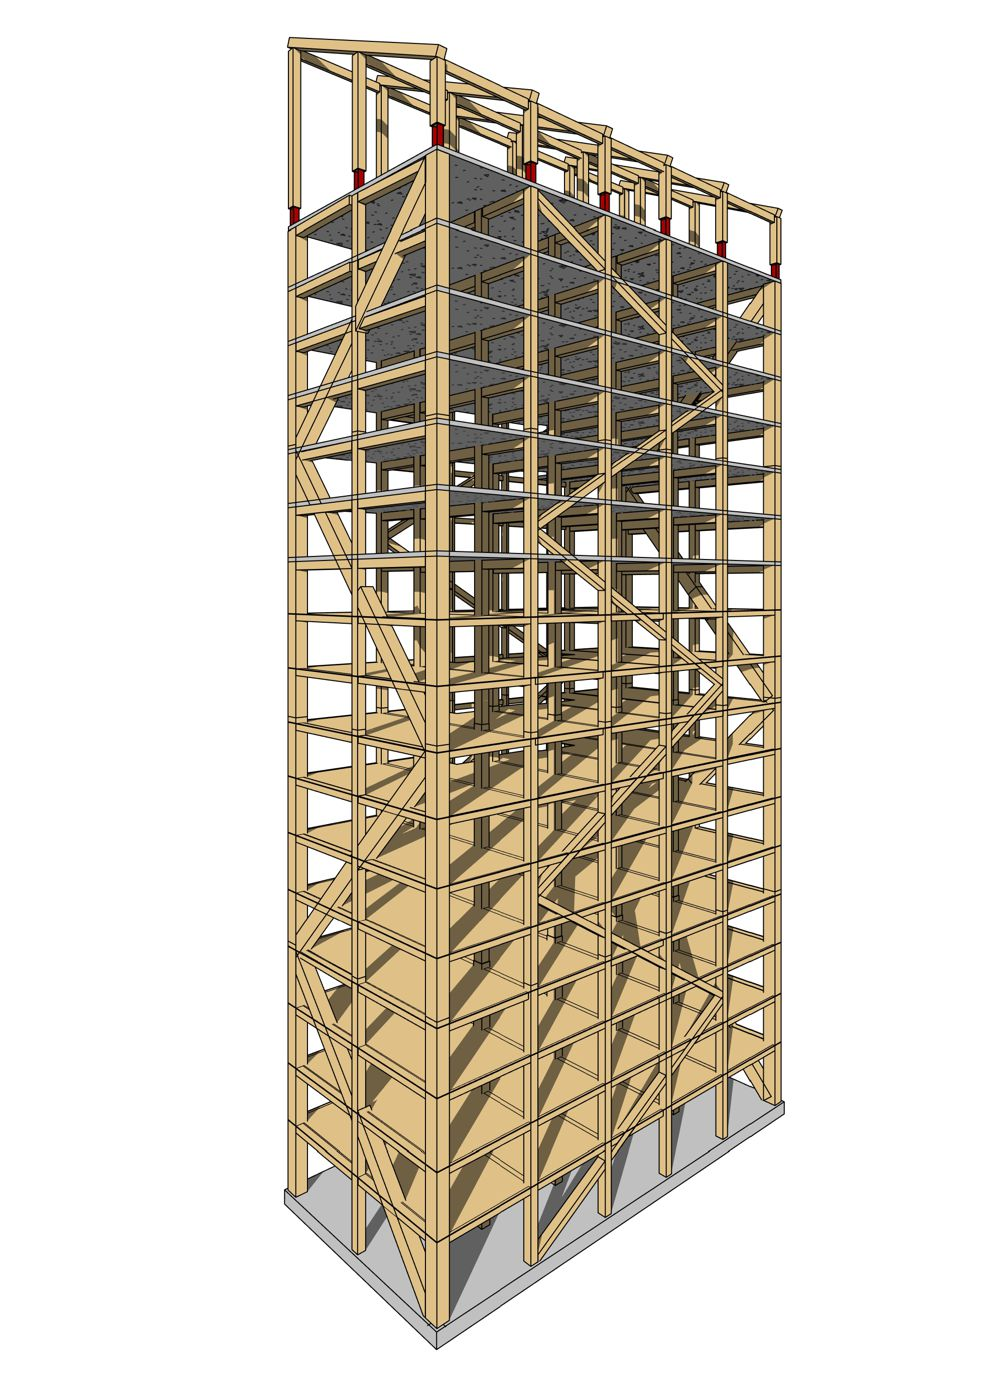 Norway to build world's tallest timber building